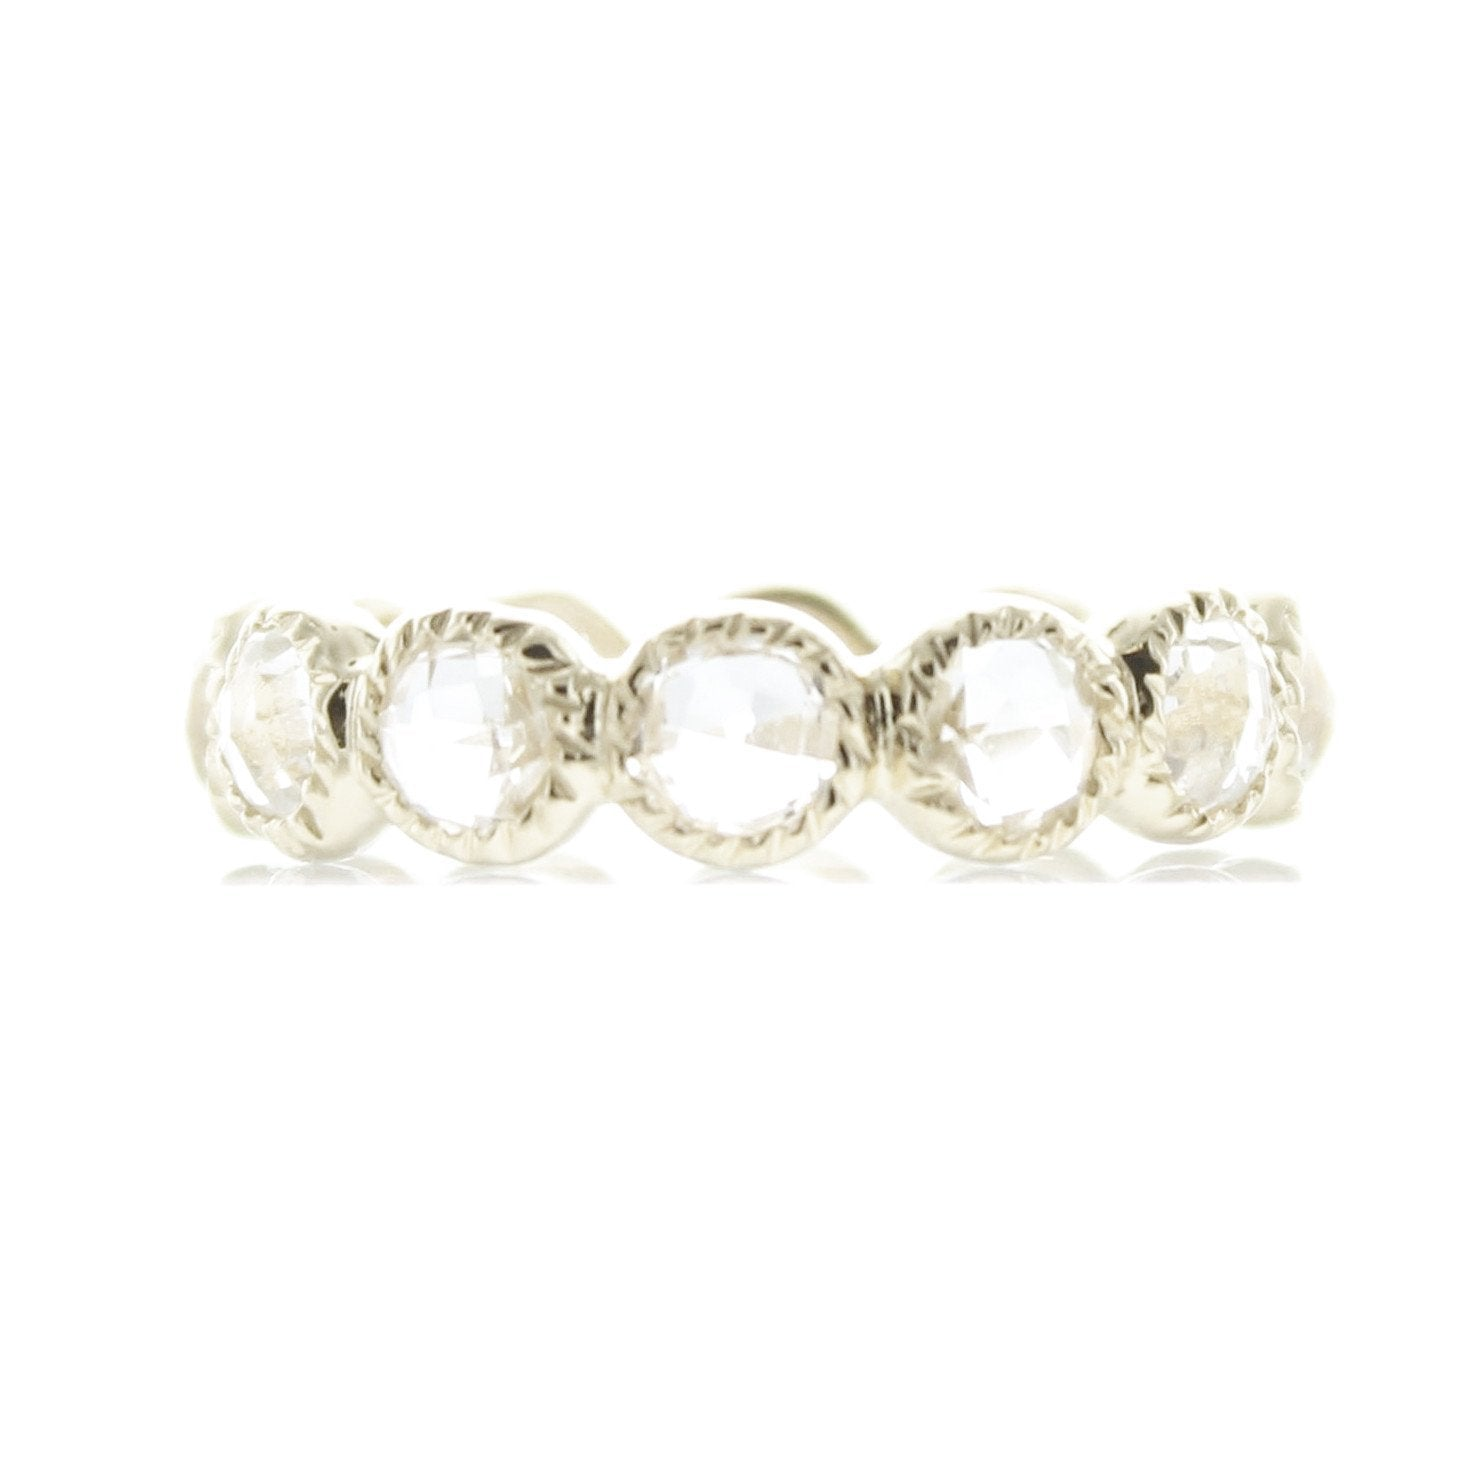 LEGACY RING WHITE TOPAZ & SILVER - SO PRETTY CARA COTTER